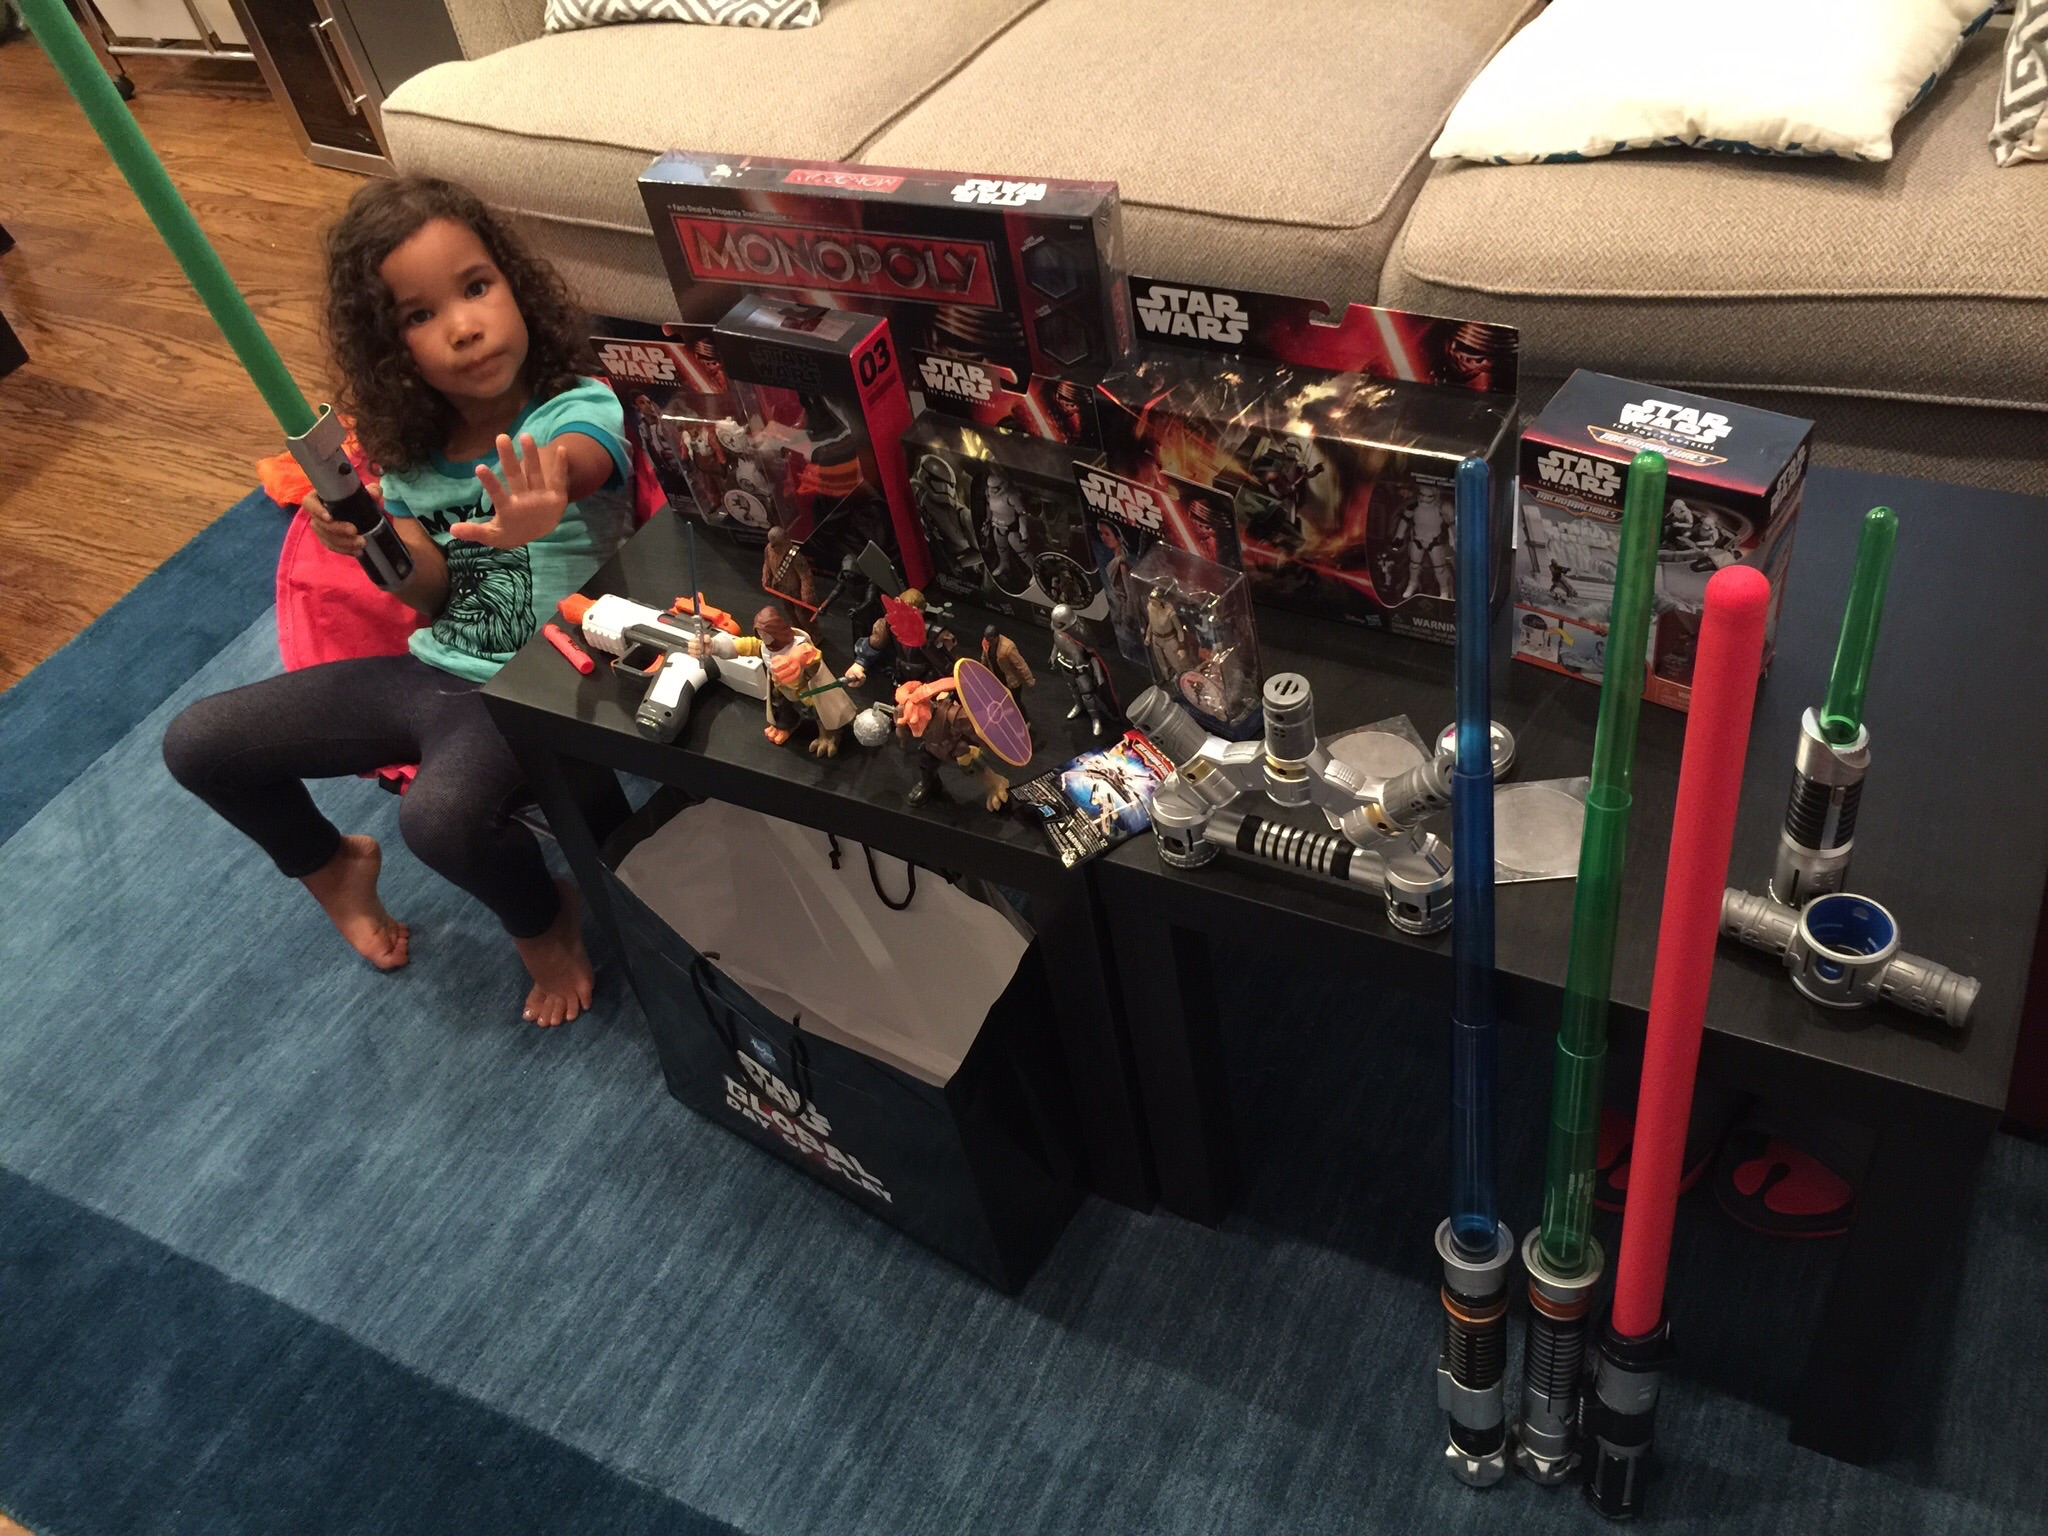 Using the Force to protect her Star Wars Global Day of Play event loot from evil.